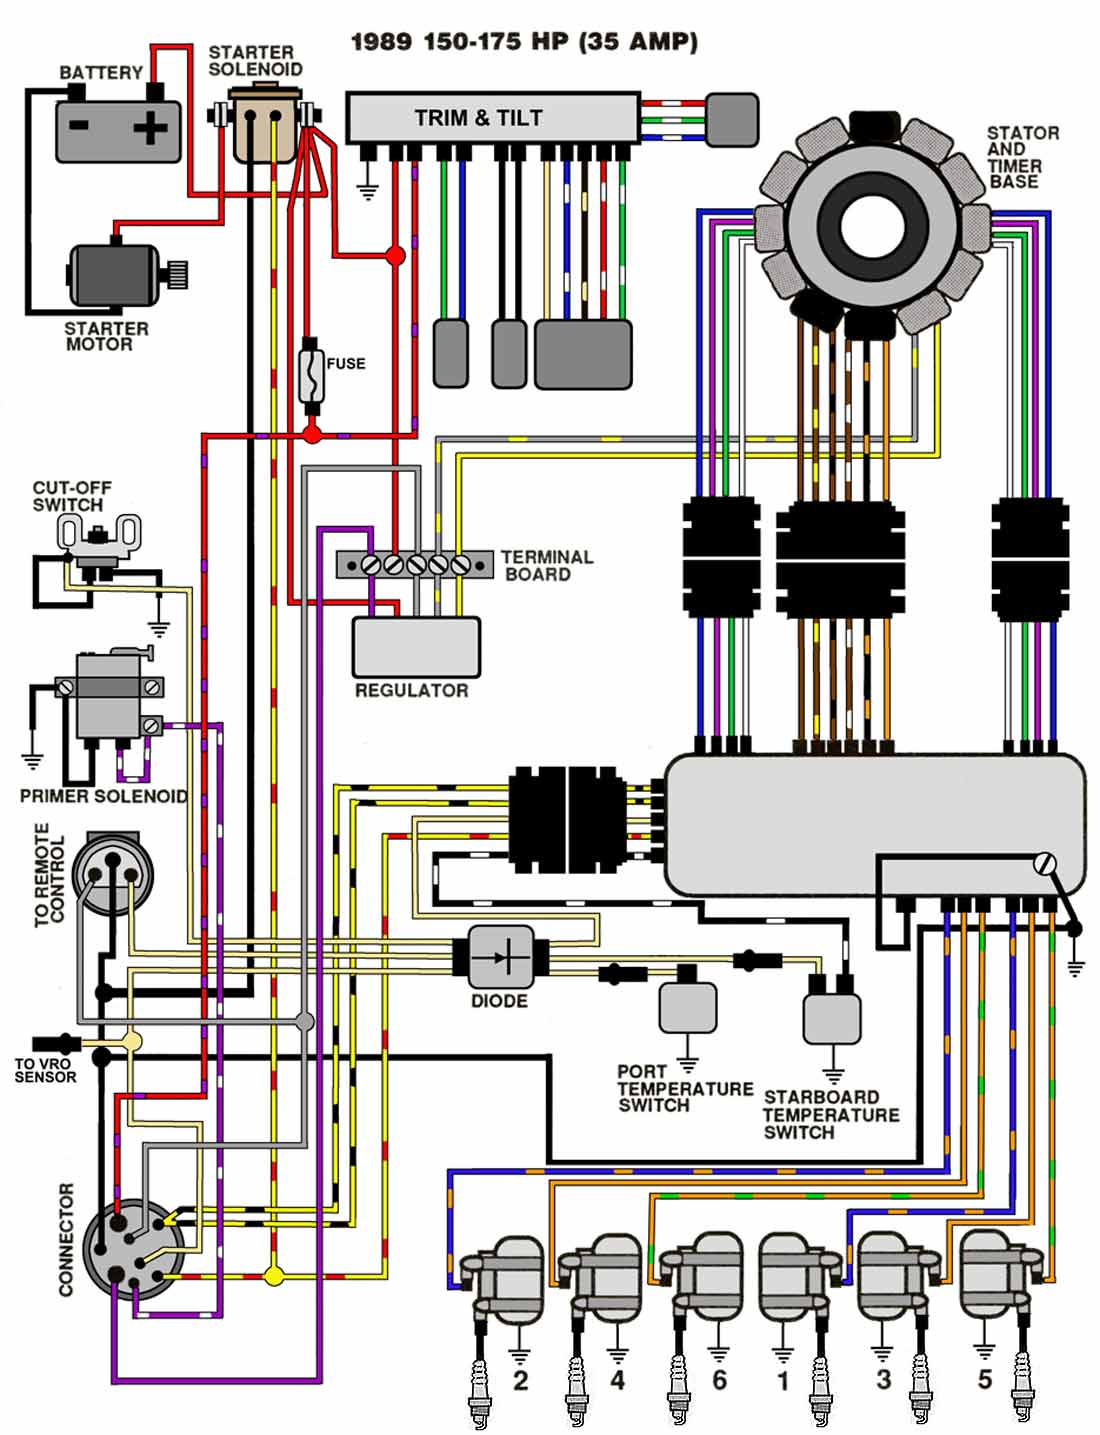 832 175 Hp Mercury Outboard Wiring Diagram | Wiring LibraryWiring Library